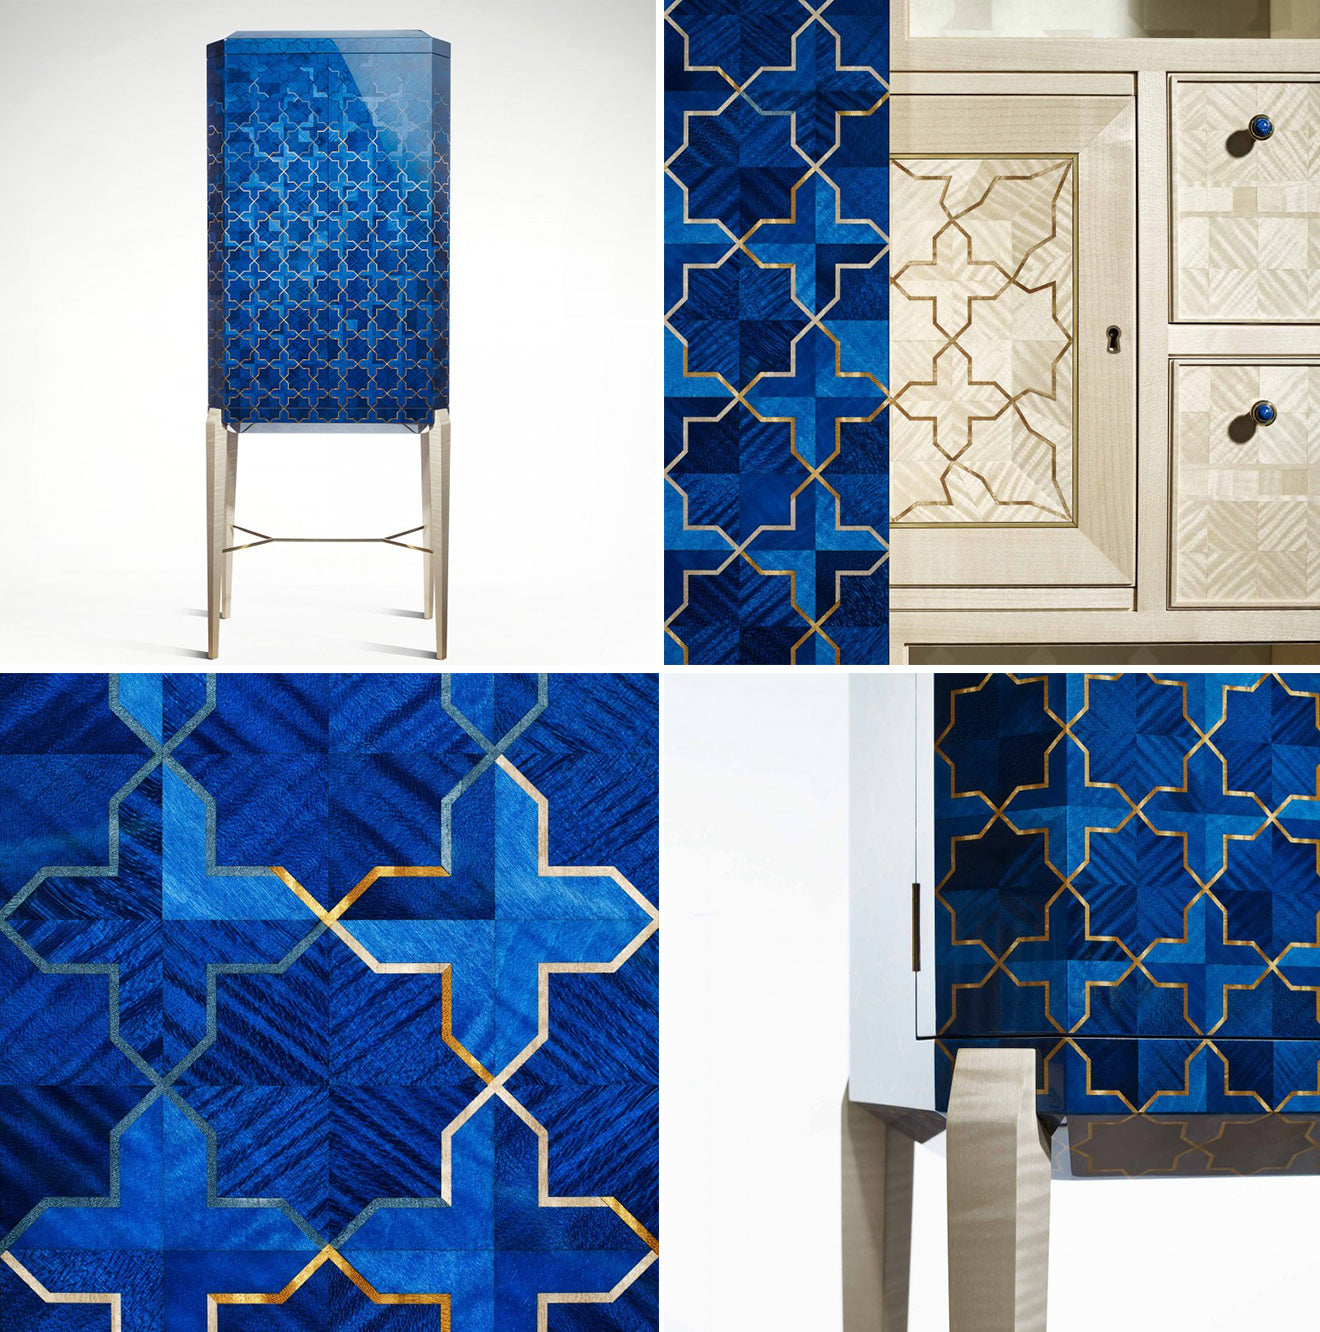 Blue islamic inspired luxury furniture design from LINLEY Girth treasure chest furniture